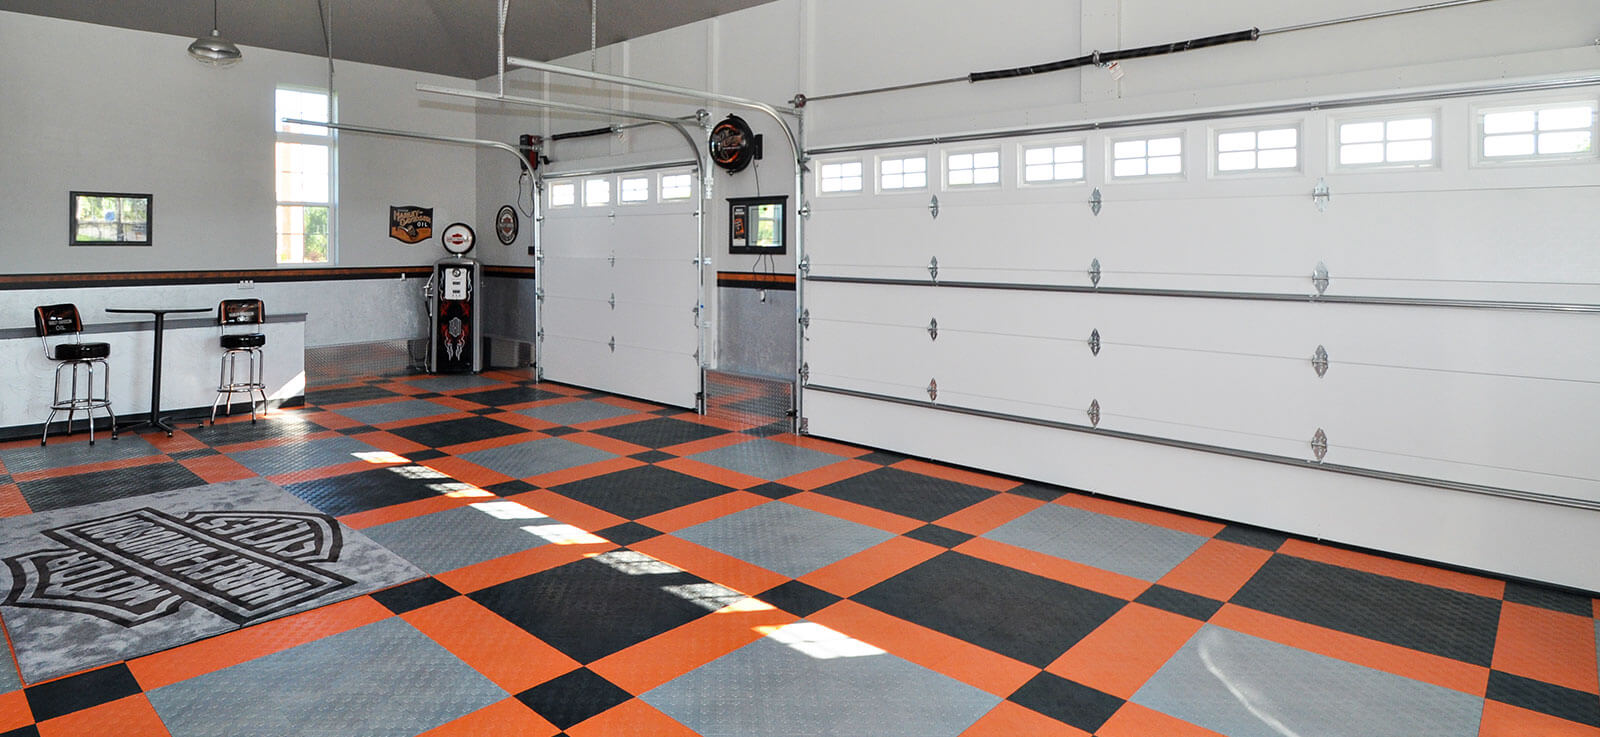 Portable Parking Garage >> Harley-Davidson garage flooring